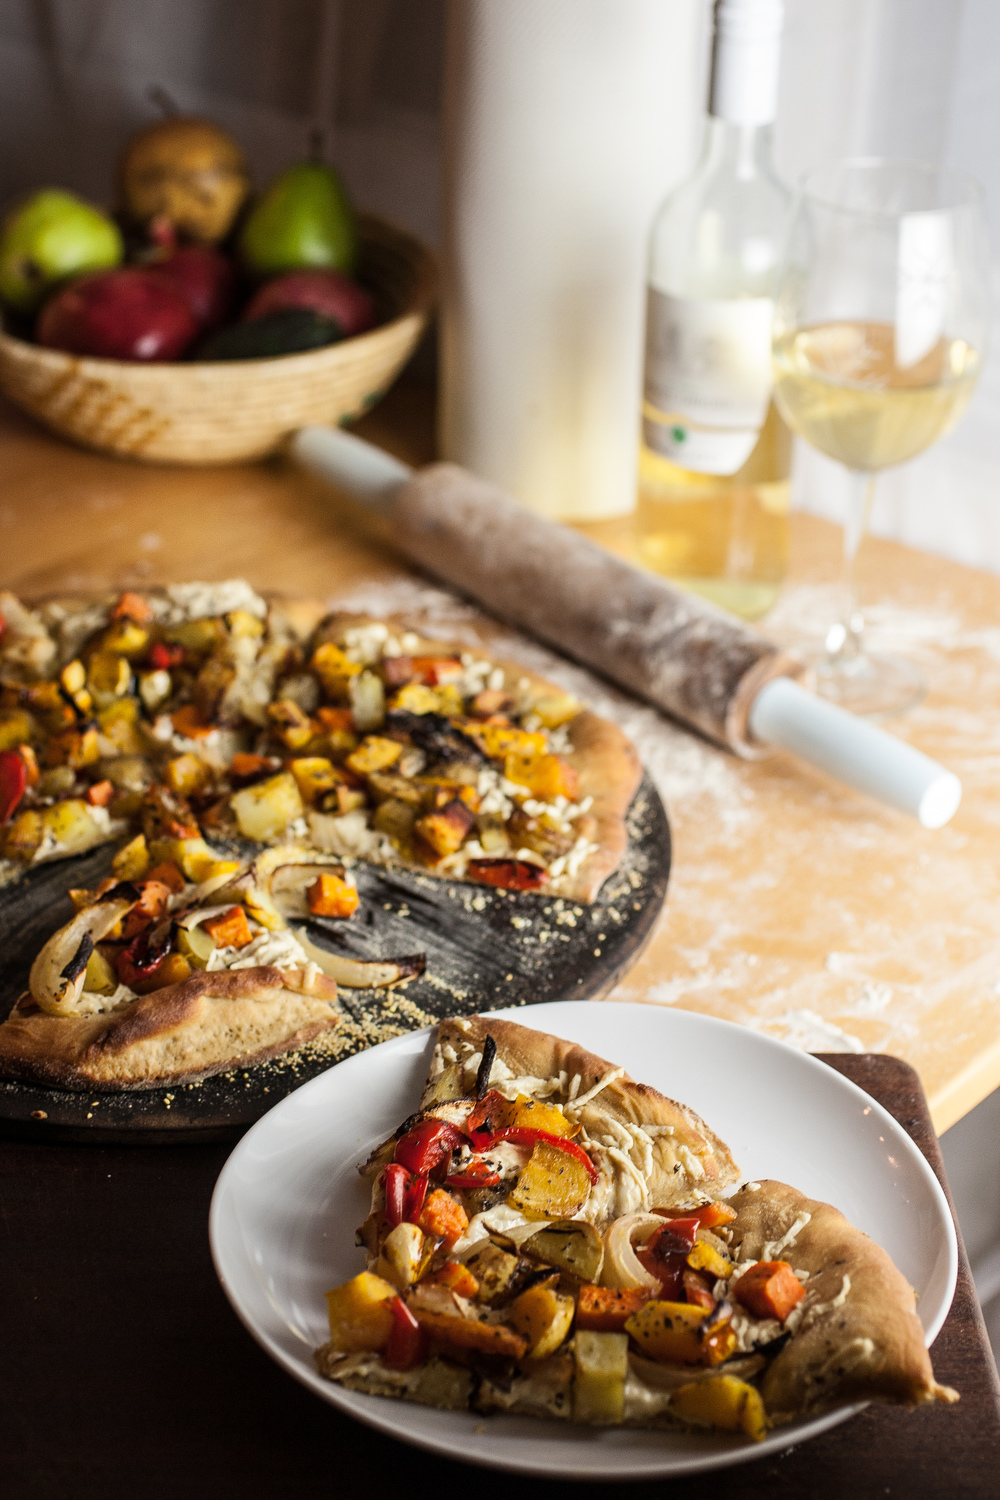 Produce On Parade - Roasted Squash and Vegetable Pizza - Roasted squash, sweet potato, carrots, and other assorted vegetables adorn a sweet and doughy homemade pizza crust with creamy, vegan mozzarella.